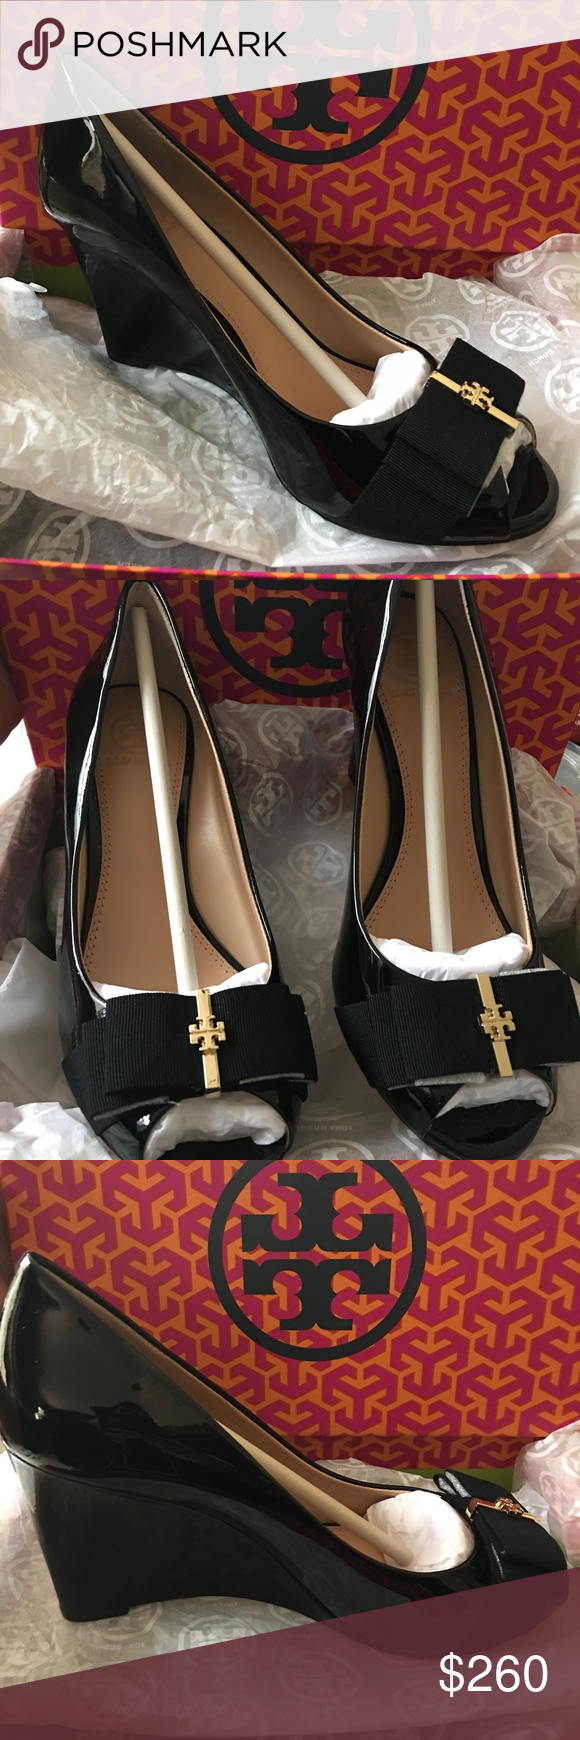 7f0f860d3729 TORY BURCH TRUDY OPEN-TOE DEMI WEDGE 7.0 TRUDY 85MM OPEN TOE WEDGE SOFT  PATENT CALF NEW IN BOX Tory Burch Shoes Wedges